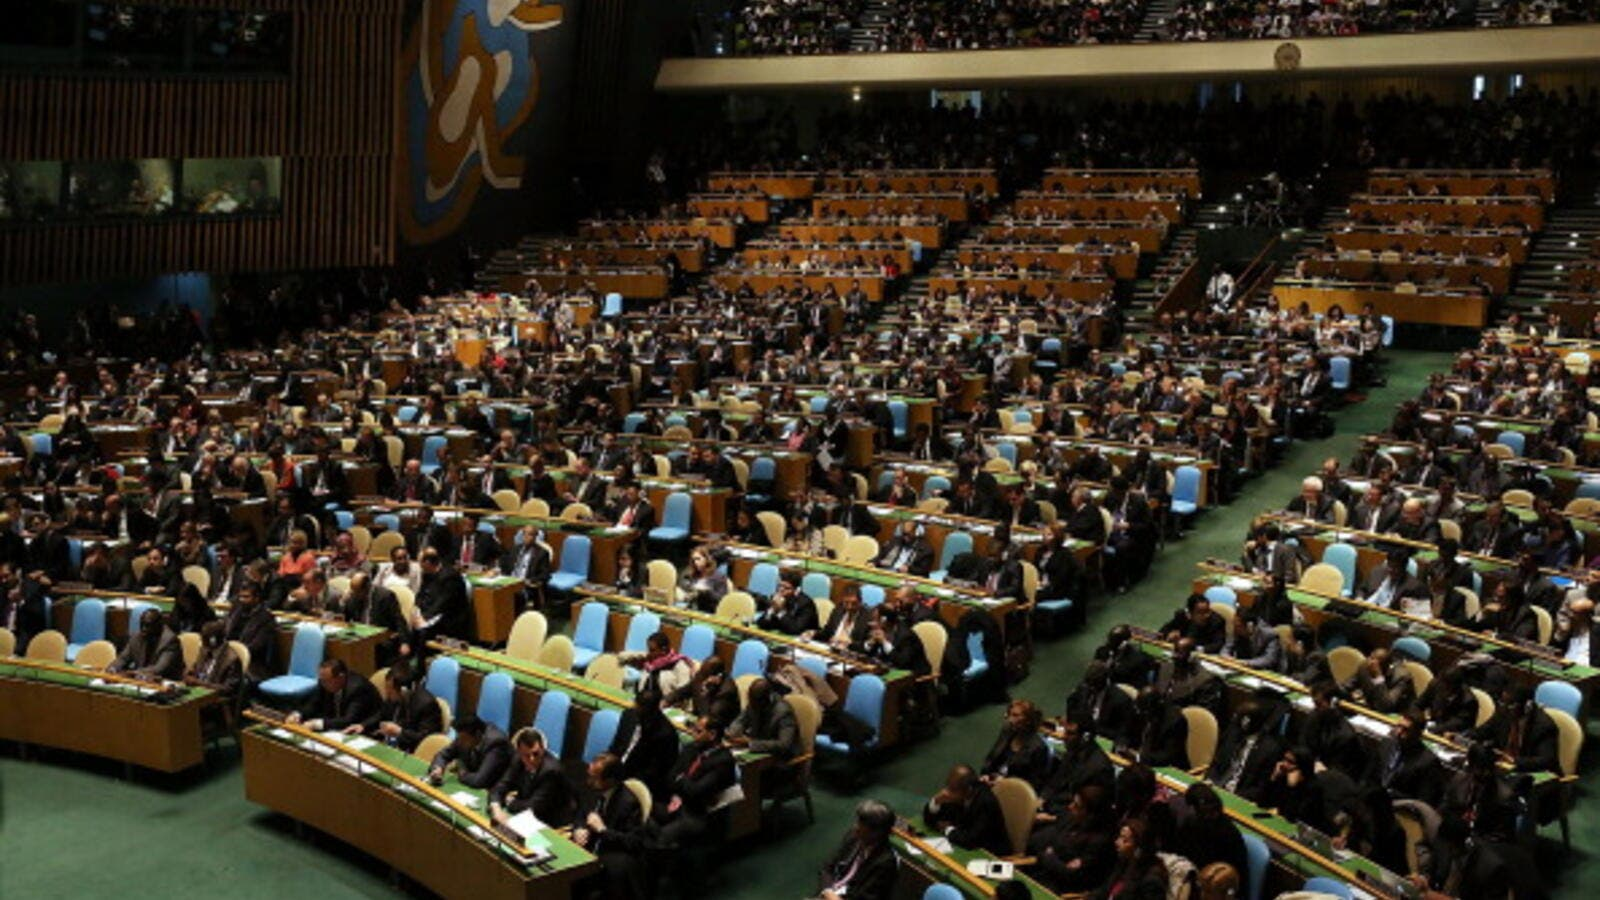 The UN General Assembly prepares for a debate in November 2012 (Getty)